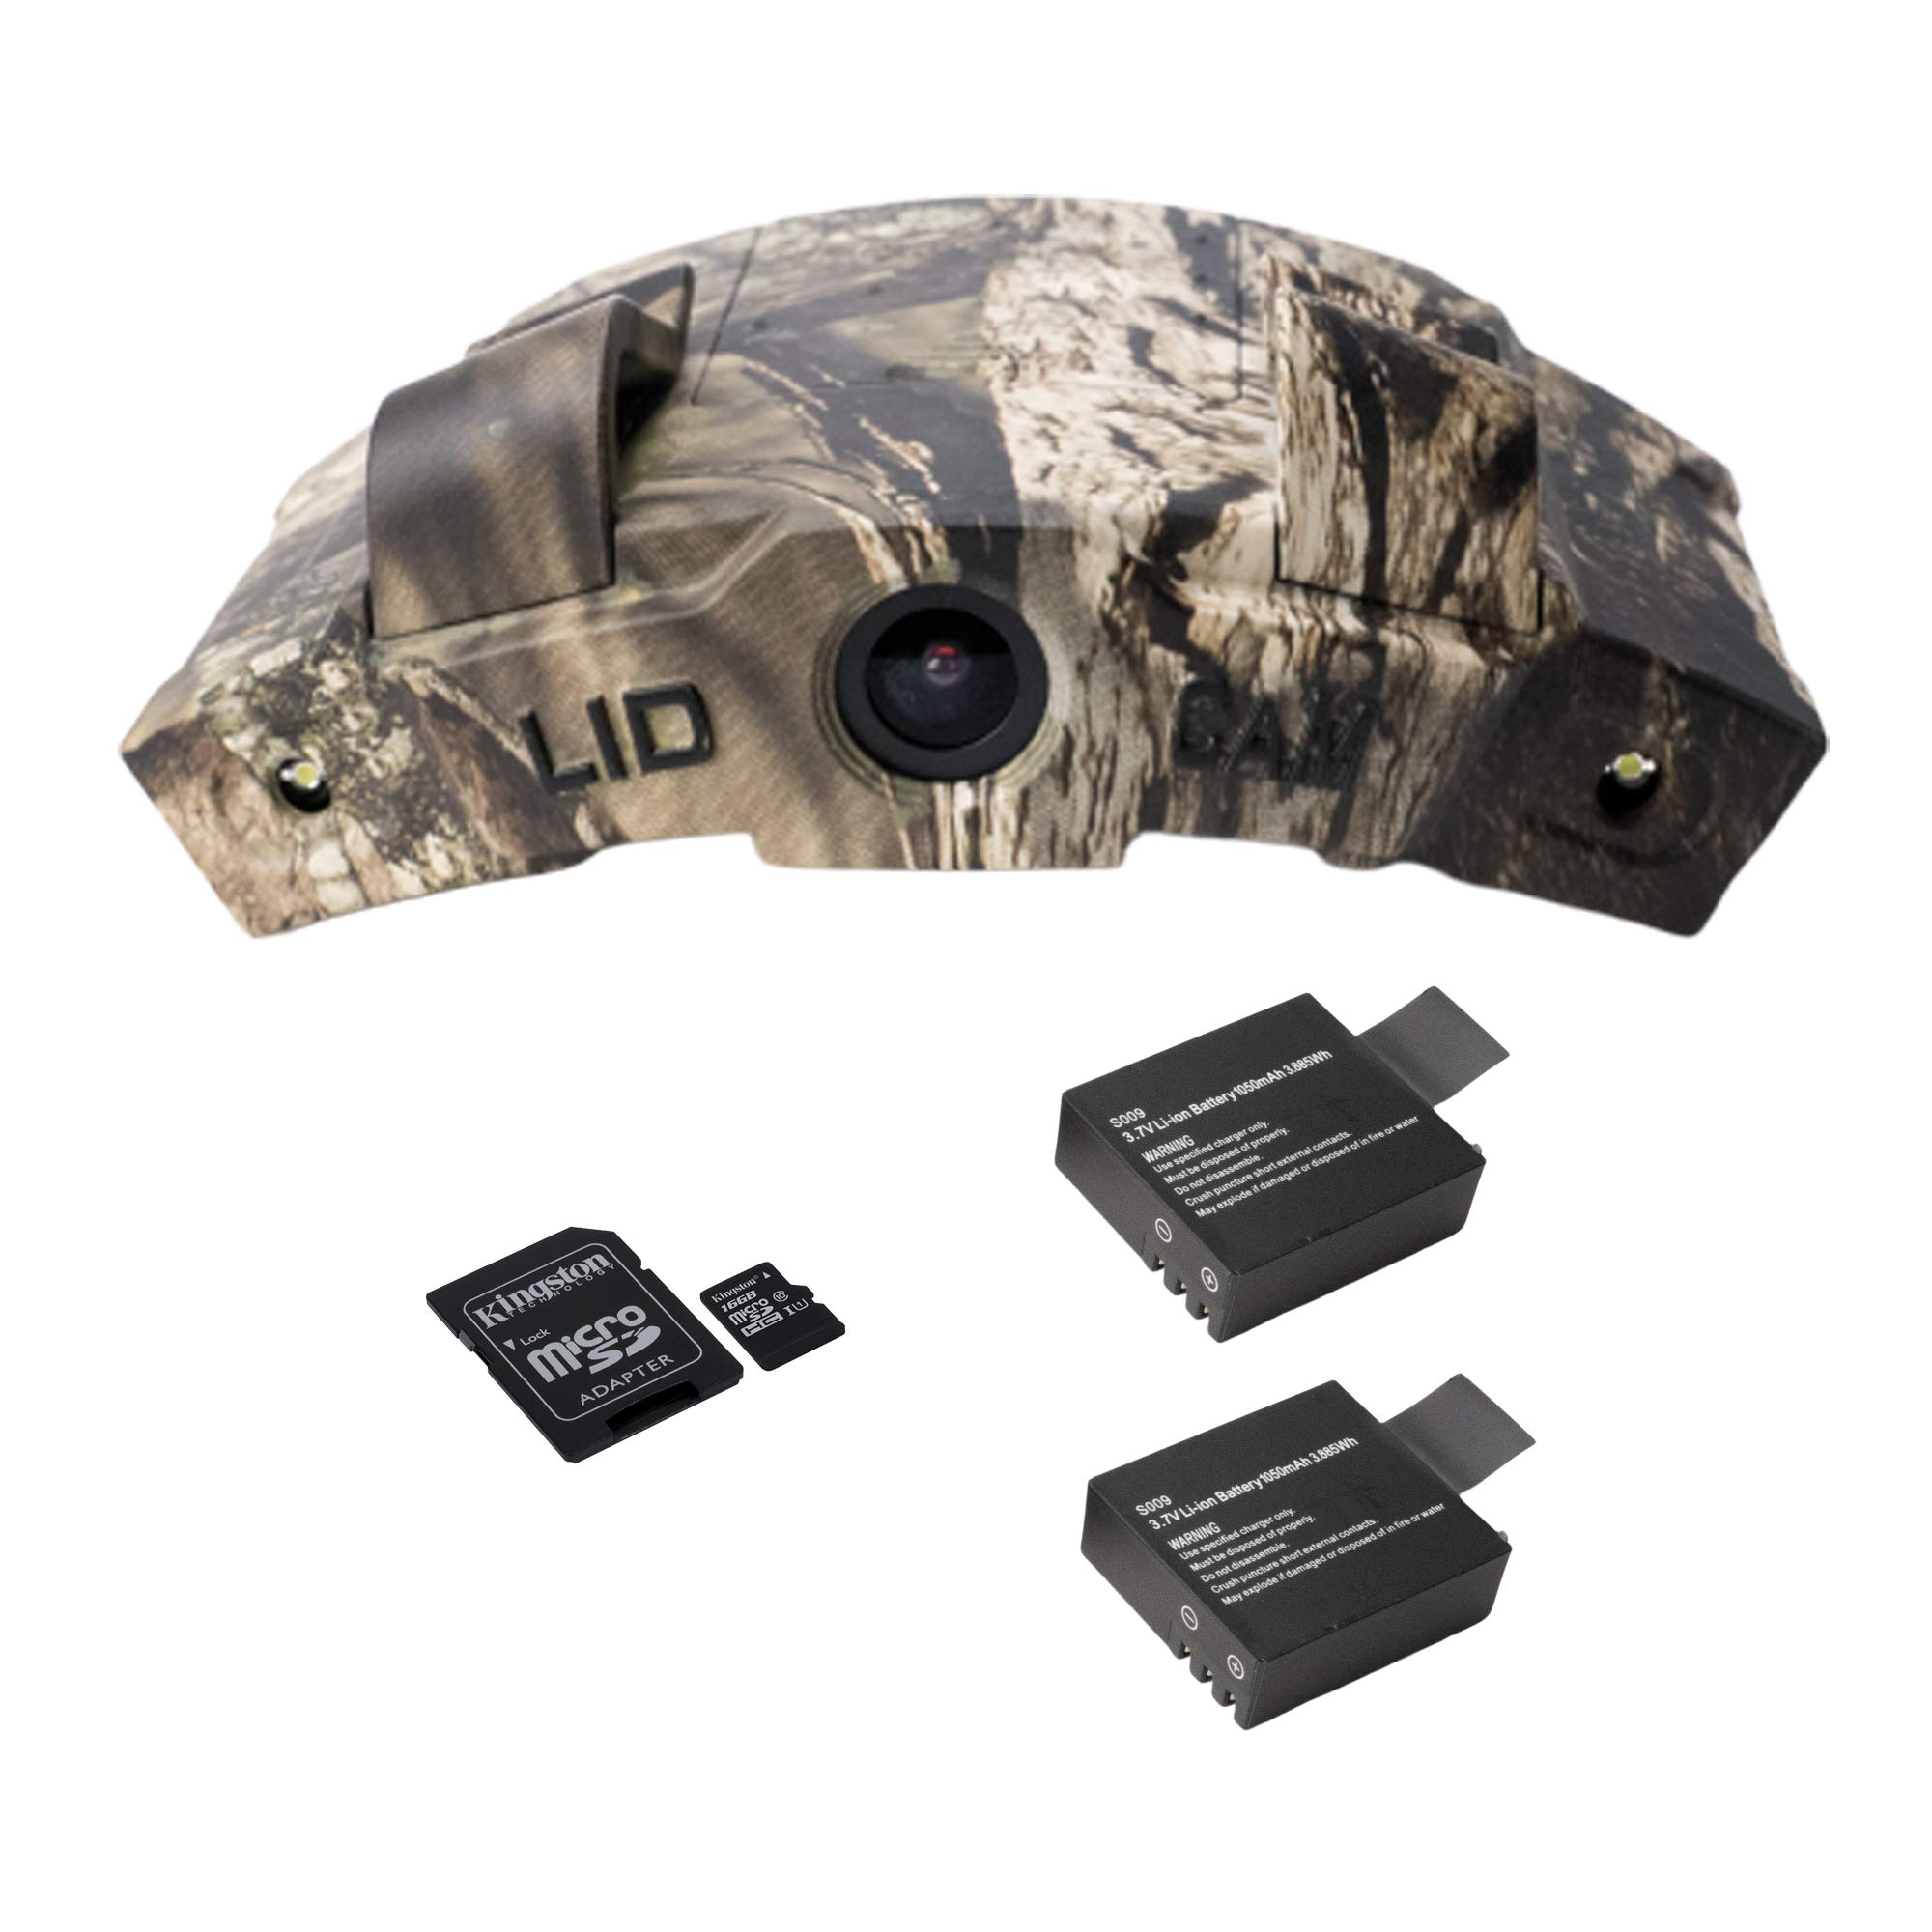 LiDCAM LC-WF Hands Free Digital Camouflage Action Camera with 16gb microSD Card and Extra Battery, 1080P HD Wi-Fi with Full Audio